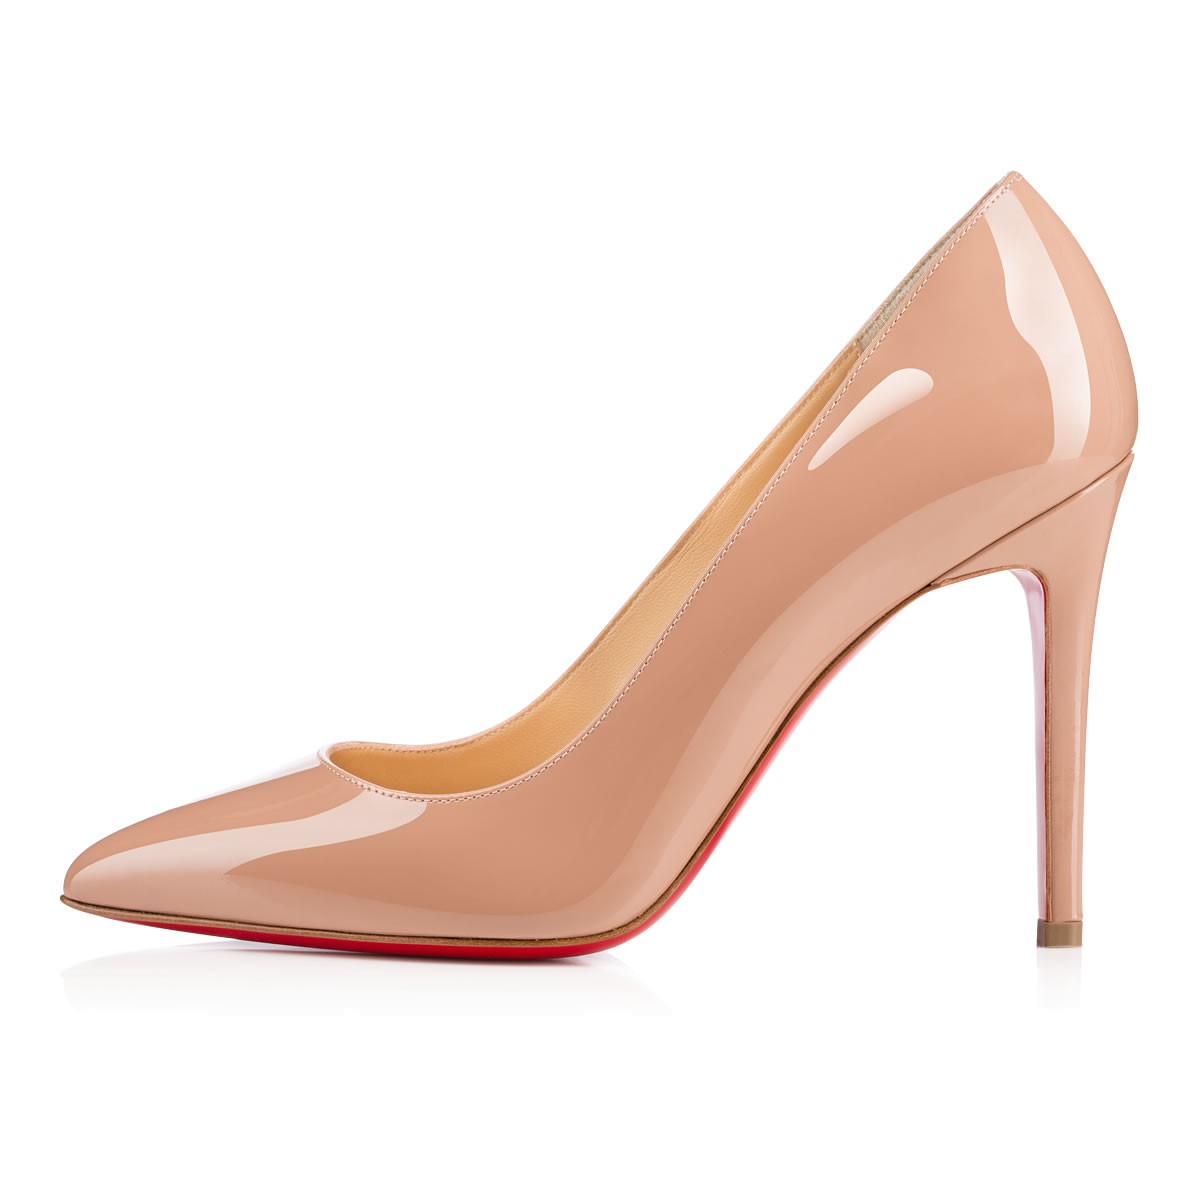 finest selection 95081 a8c1c Christian Louboutin Pigalle 100mm nude